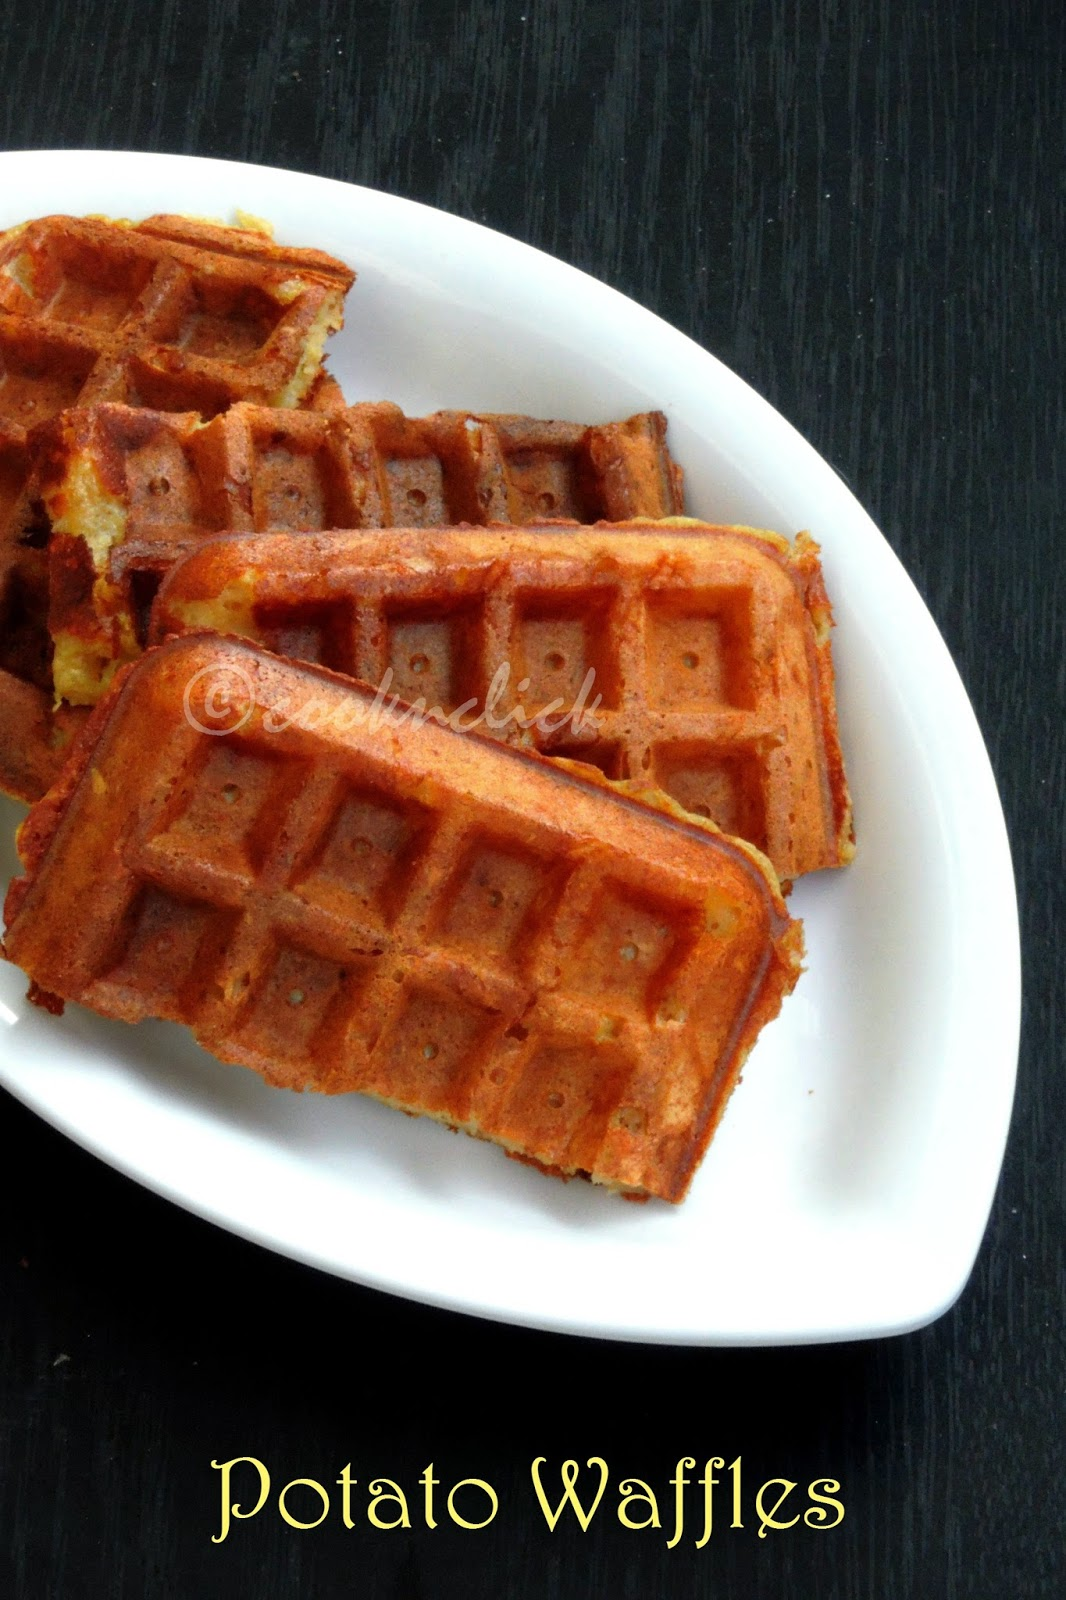 Potato Waffle, Potato Lattice Waffle